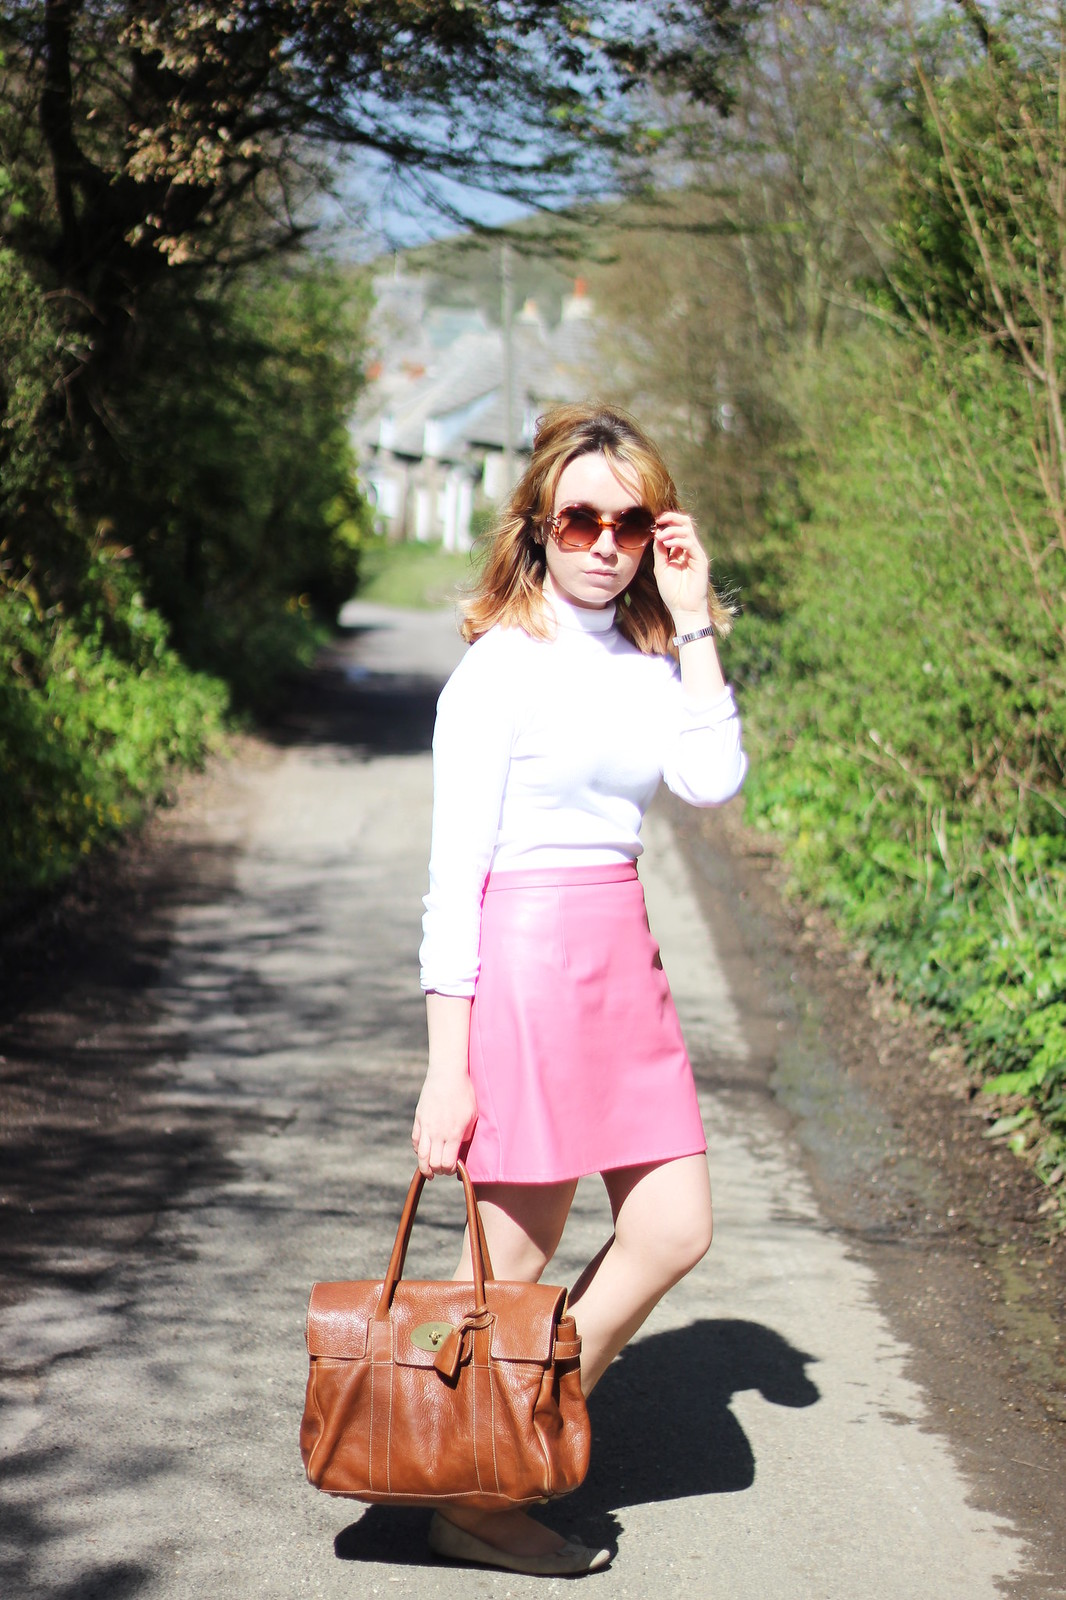 4whitepoloneck, retro, 60s, outfit, style, blonde, mod, pink, high street, mulberry, designer, spring, fashion, blogger